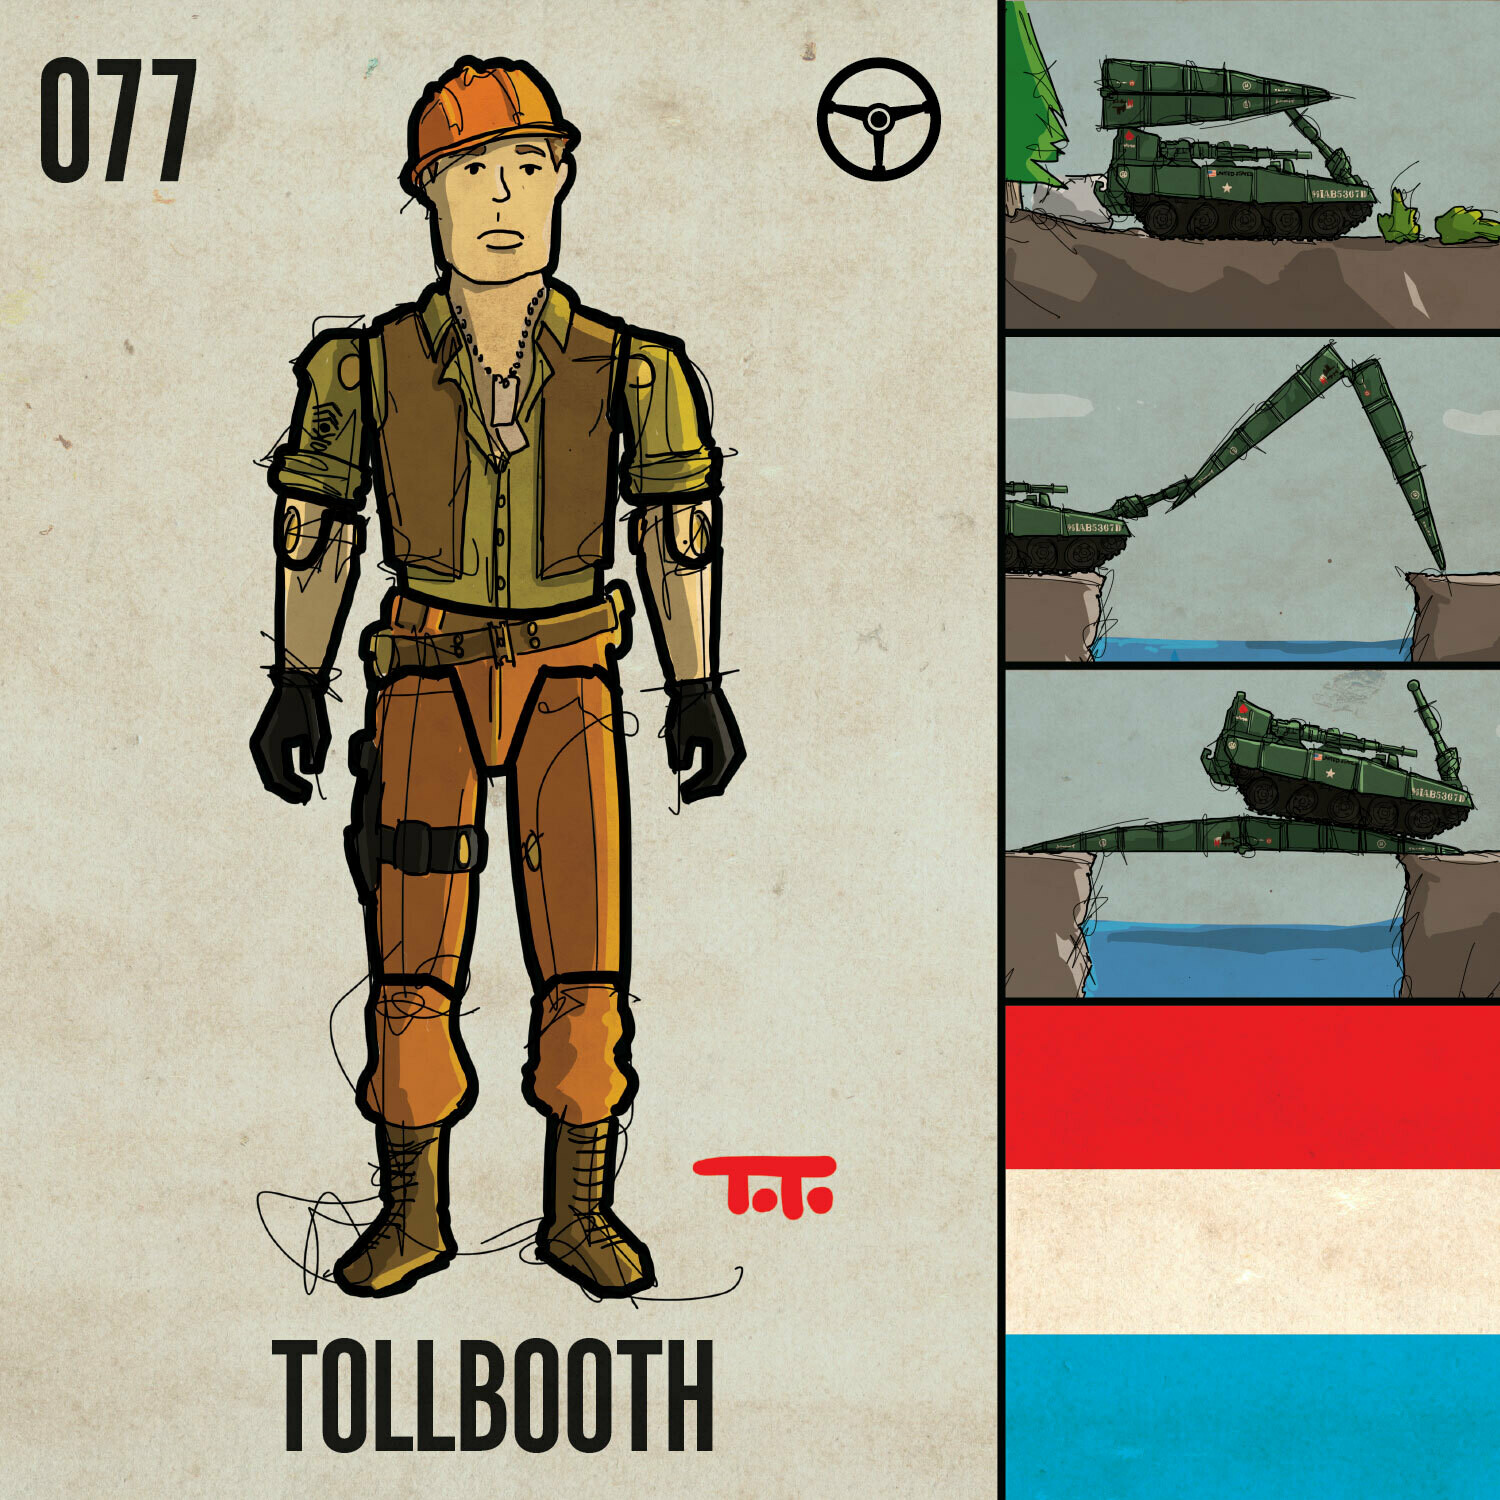 G365 SQ-077 TOLLBOOTH